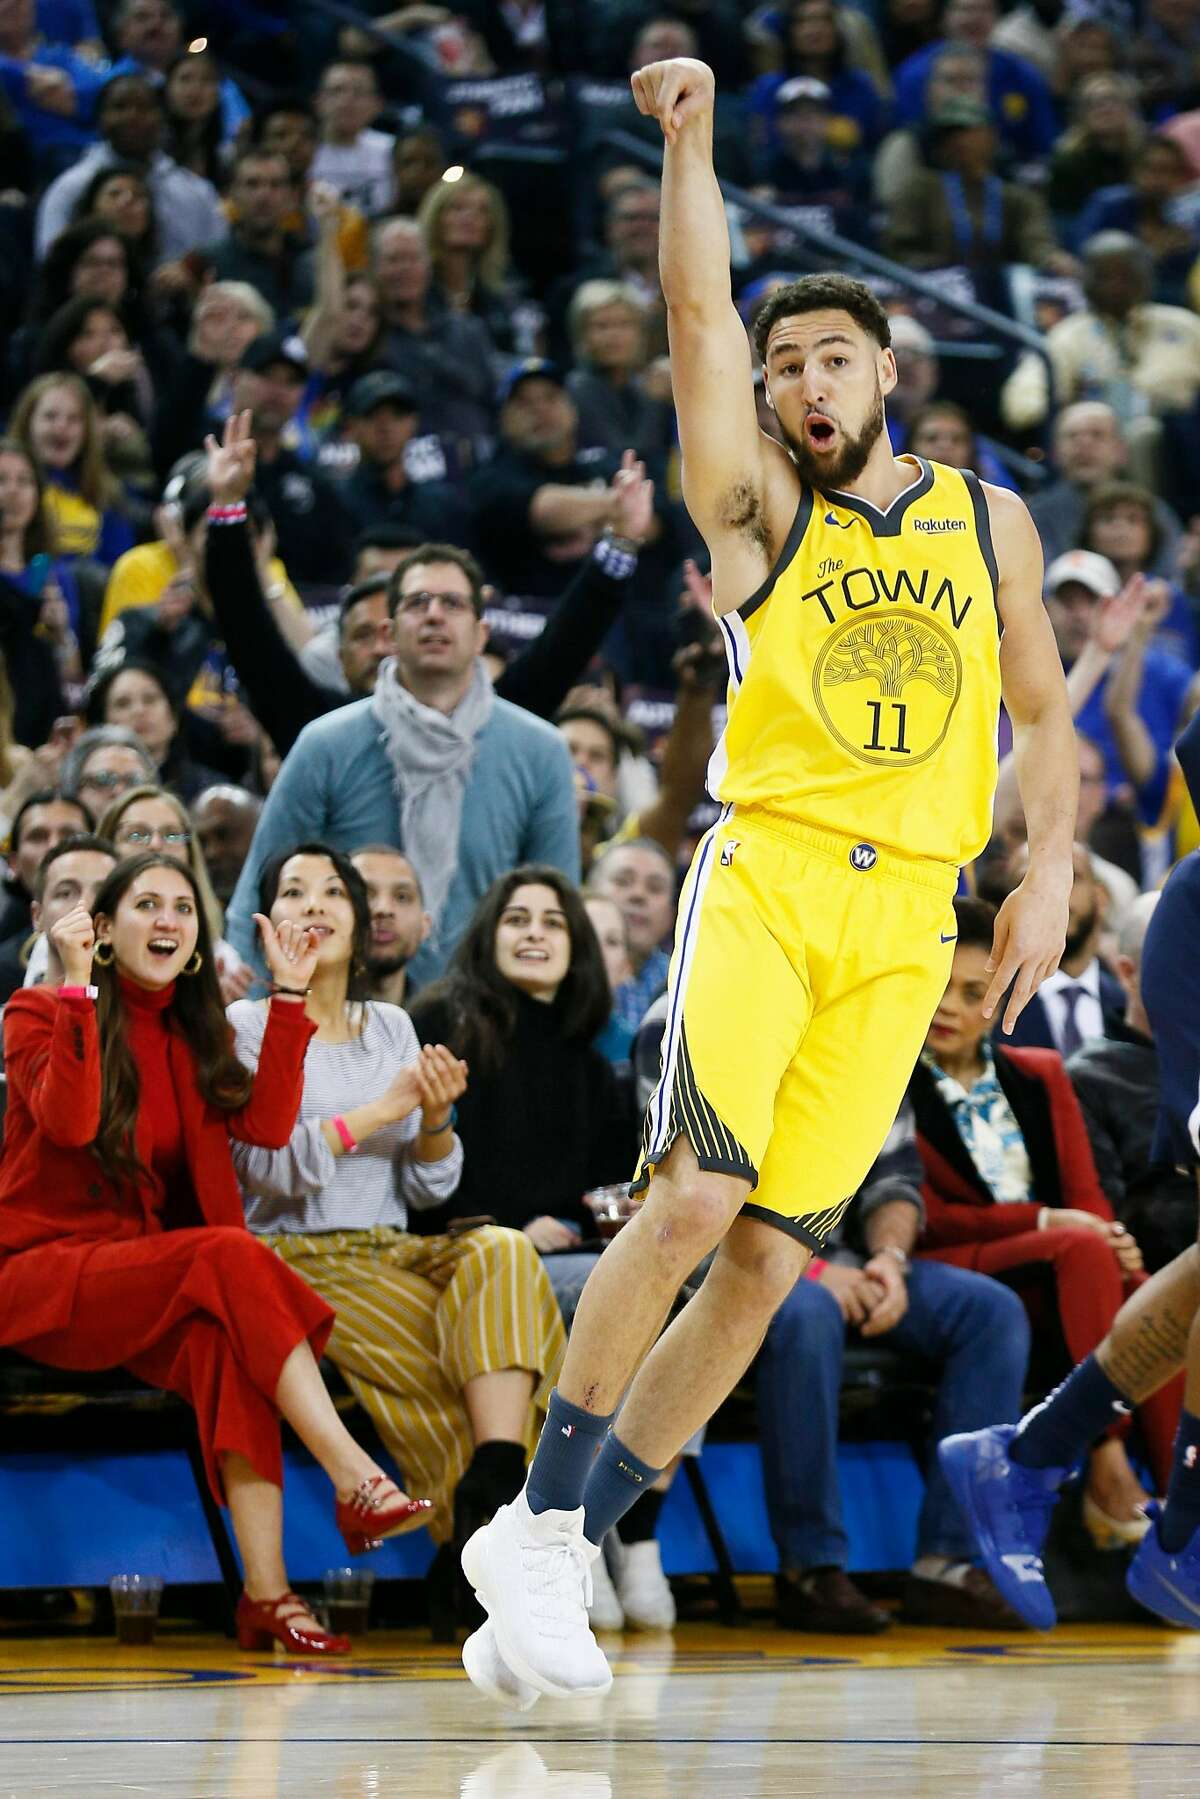 Golden State Warriors guard Klay Thompson (11) shoots a three-point field goal in the first half of an NBA game against the Denver Nuggets at Oracle Arena on Friday, March 8, 2019, in Oakland, Calif.